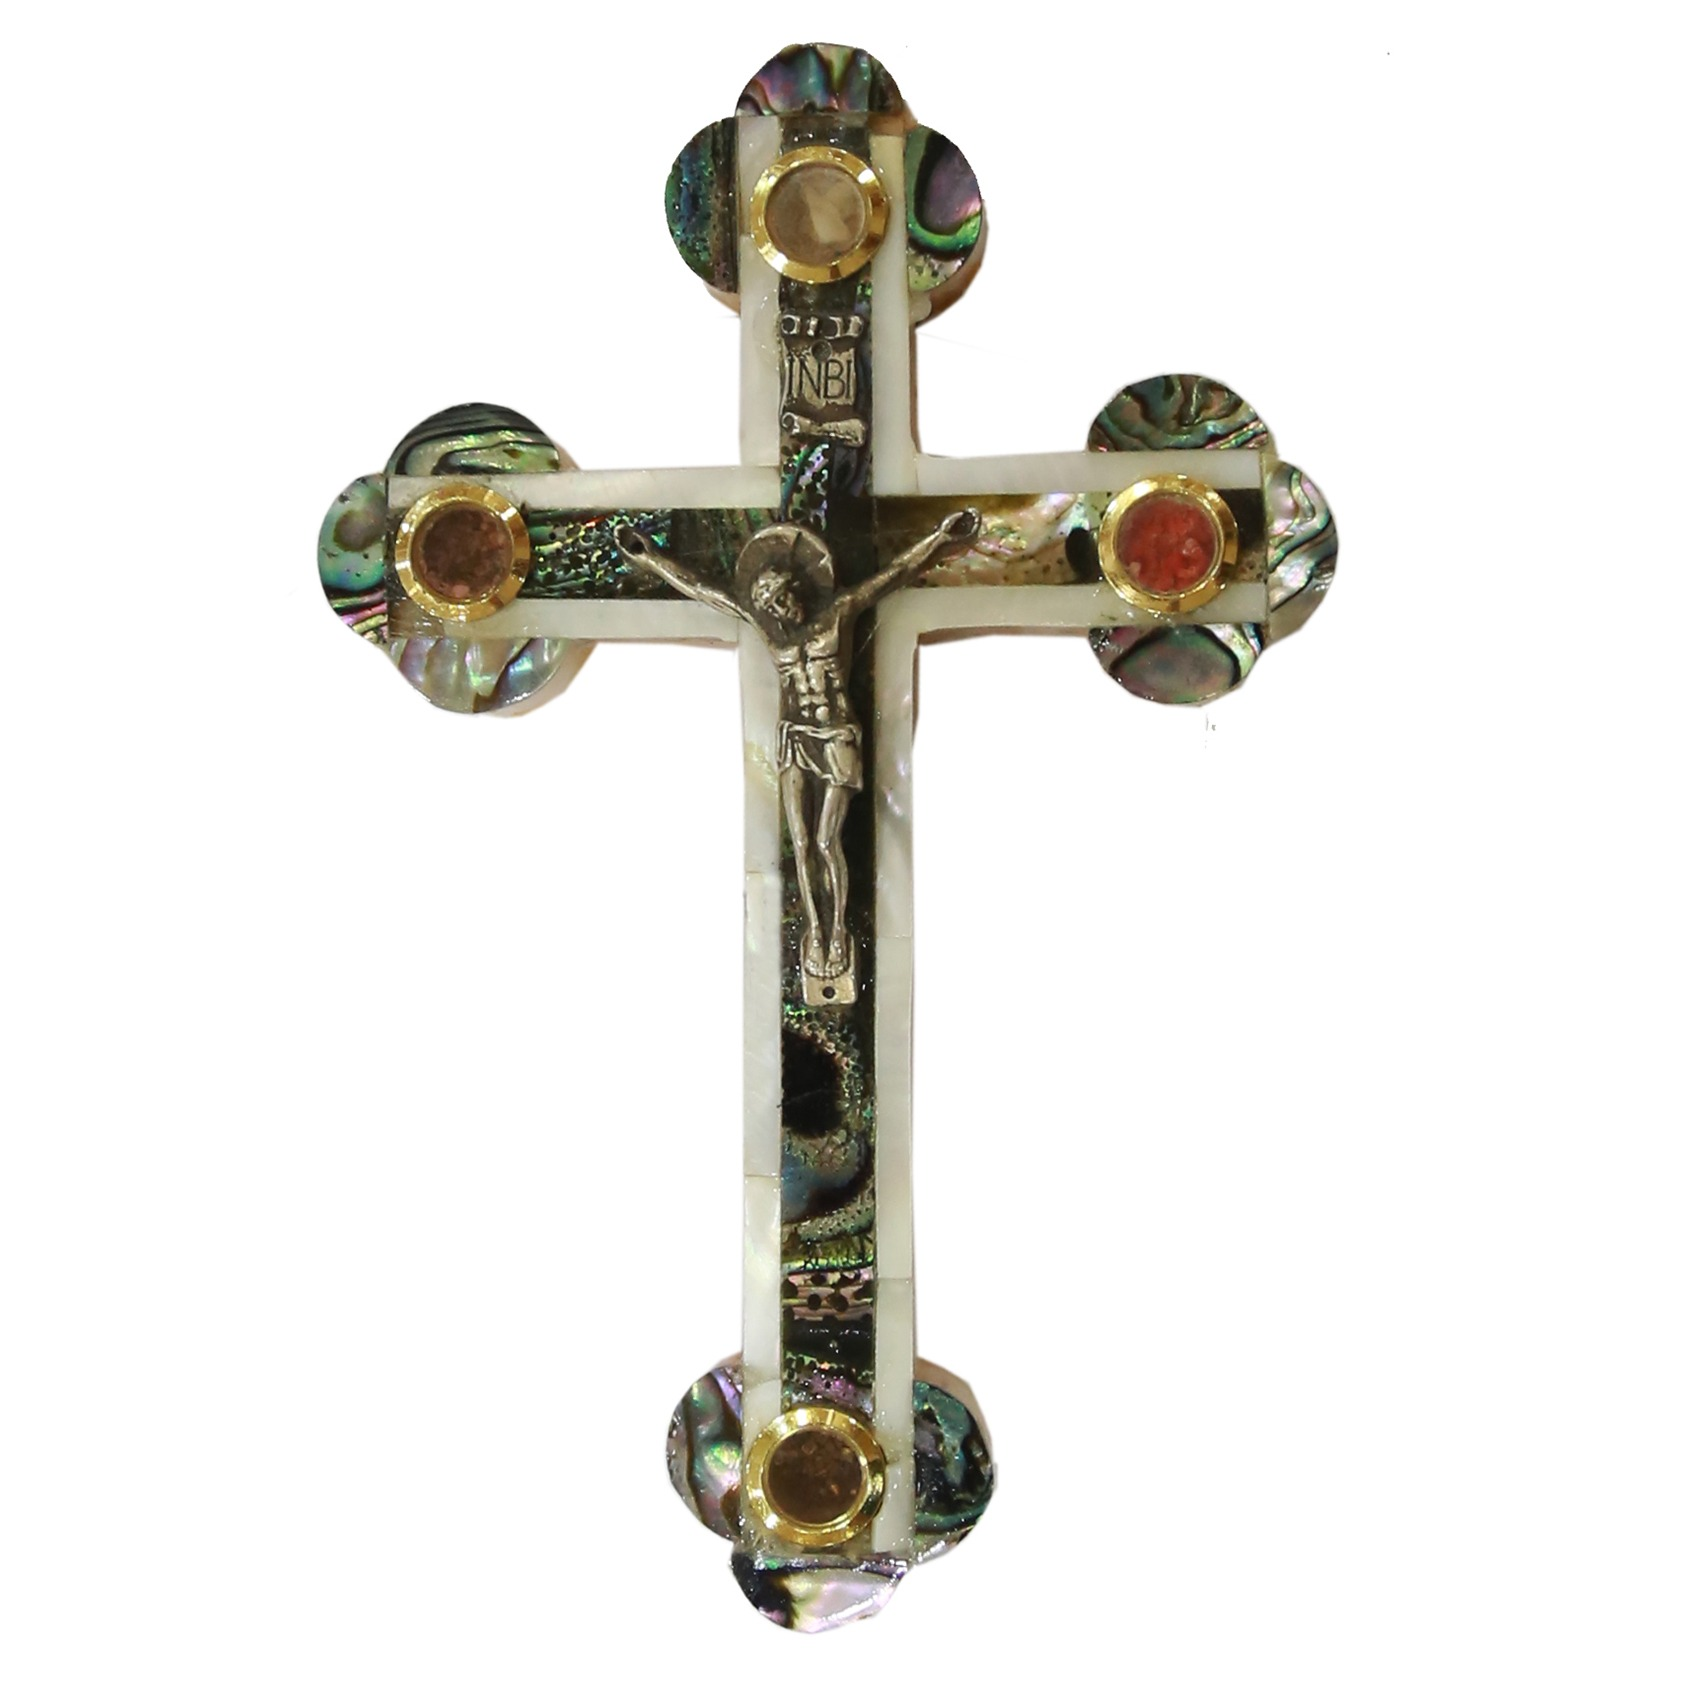 Mother Of Pearl Cross With Crucifix 4 Holy Items